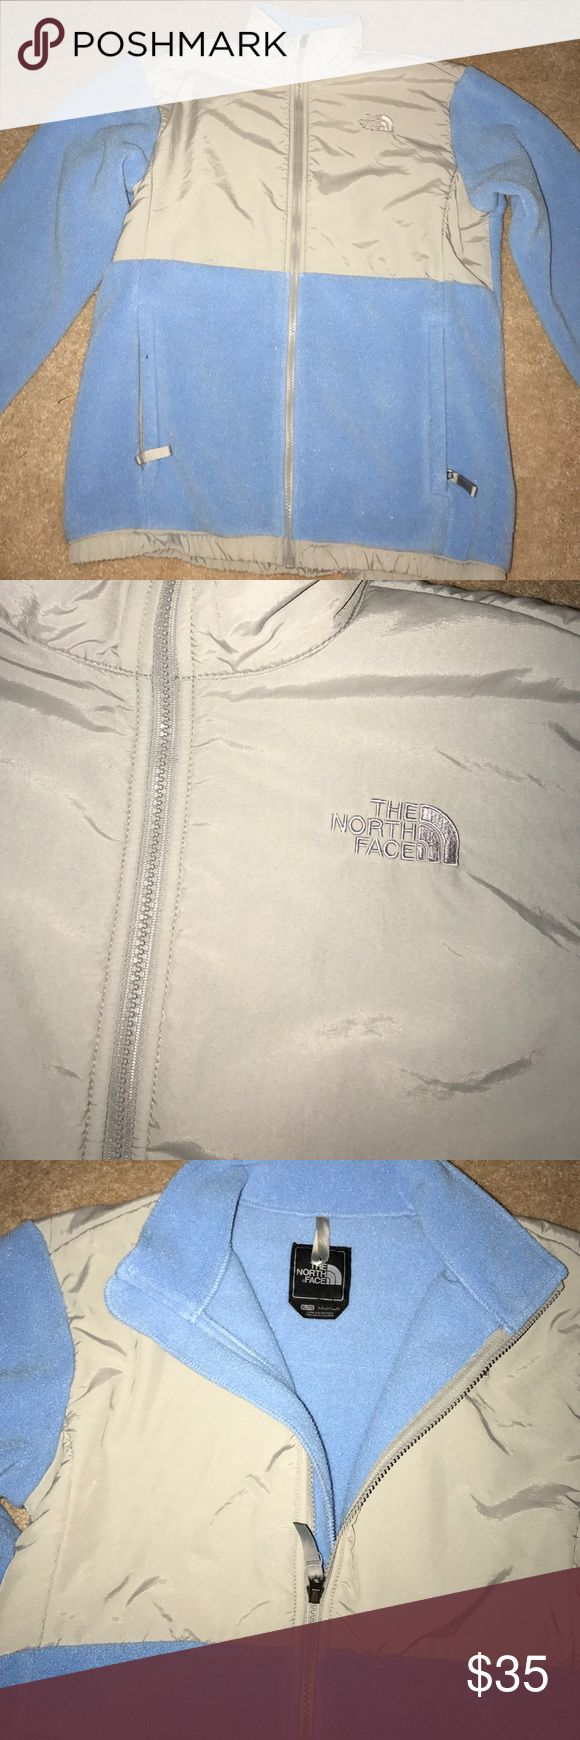 Girls north face jacket! Girls north face jacket in size XL. Like new condition. Although it is a girls size, it fits like an adult small! North Face Jackets & Coats